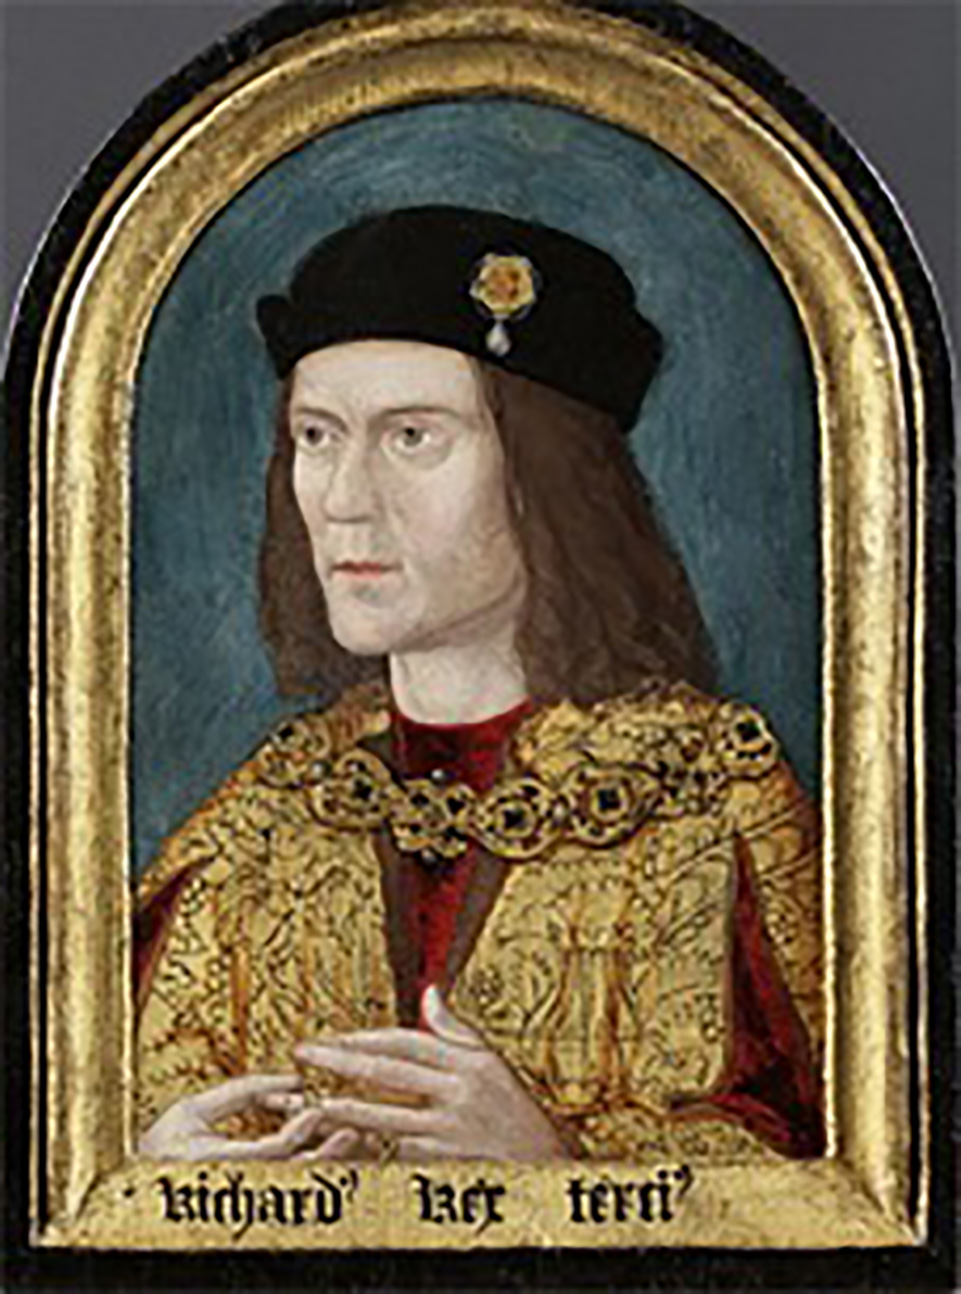 Painting of Richard III